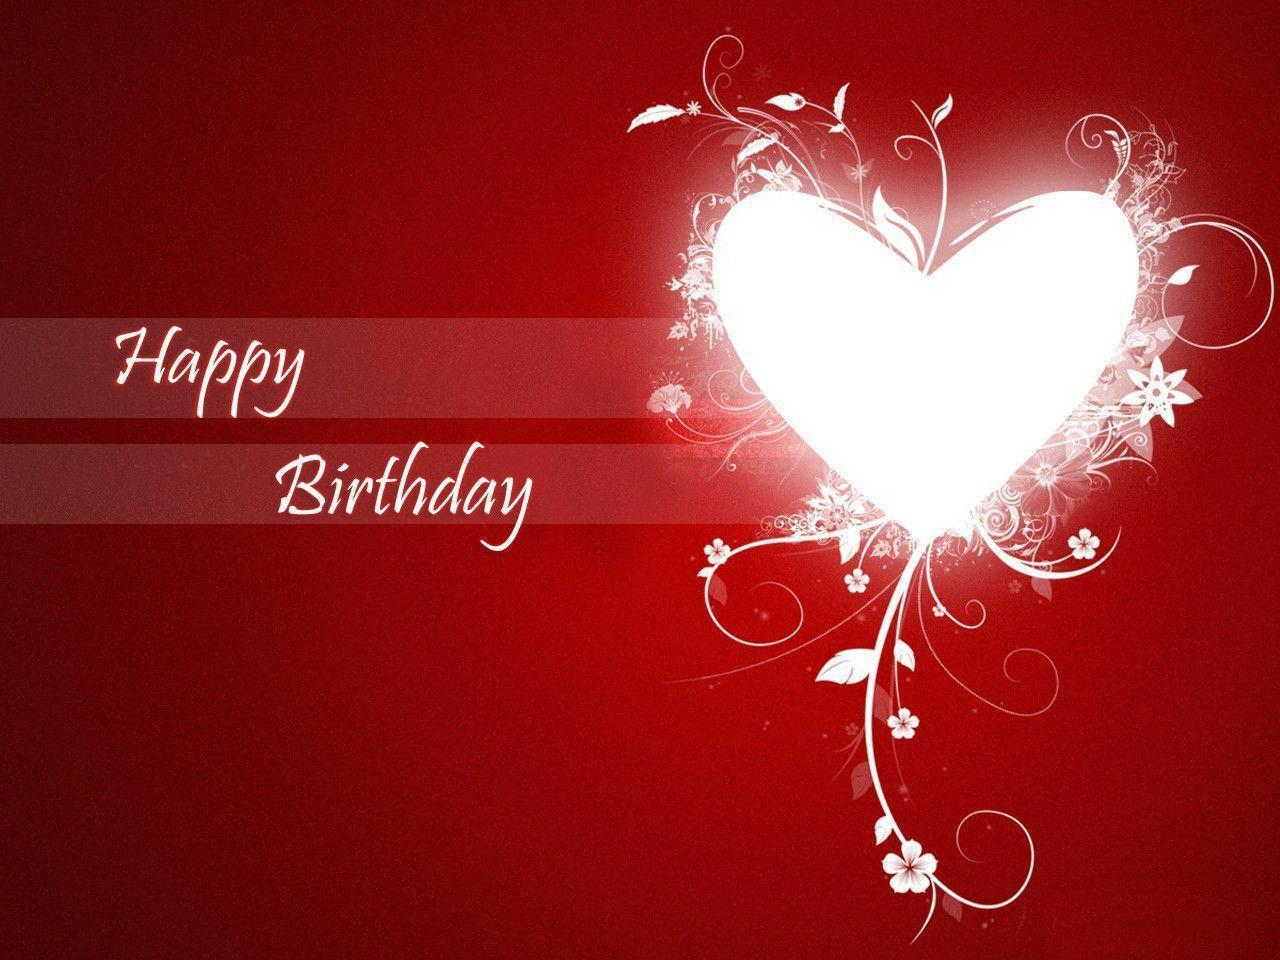 Happy Birthday Love Wallpapers